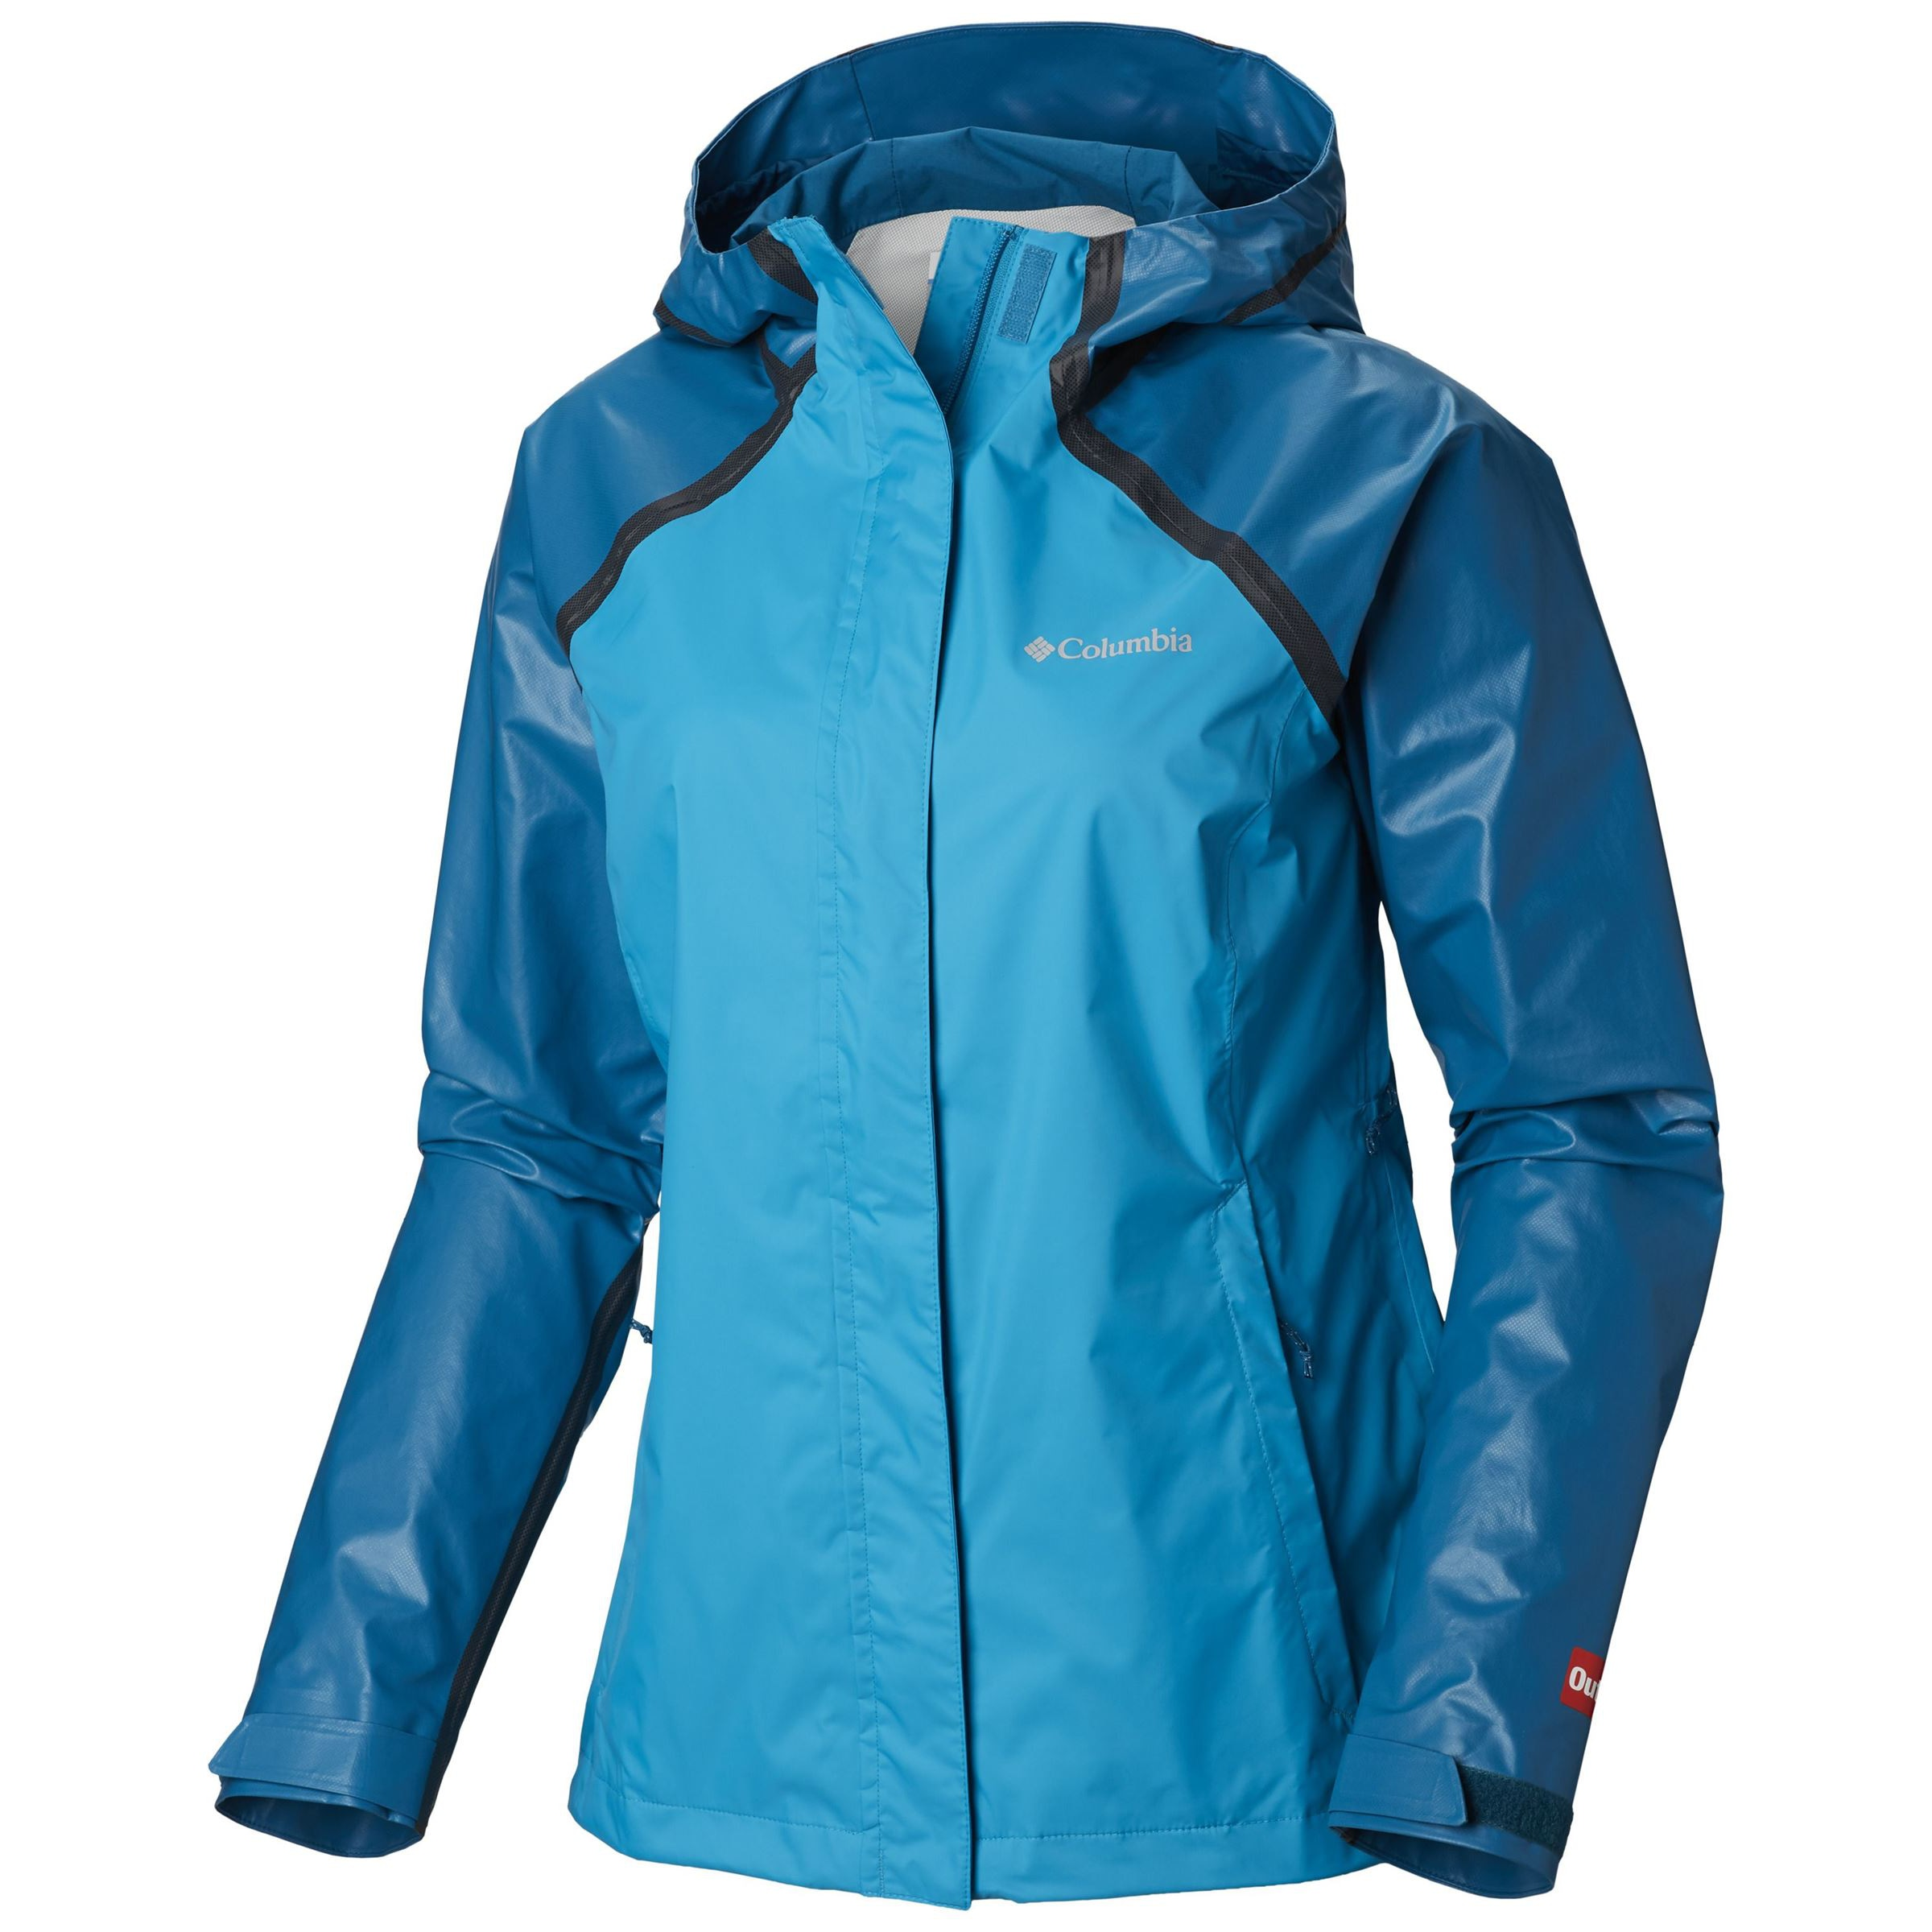 OutDry Hybrid Jacket - Women's